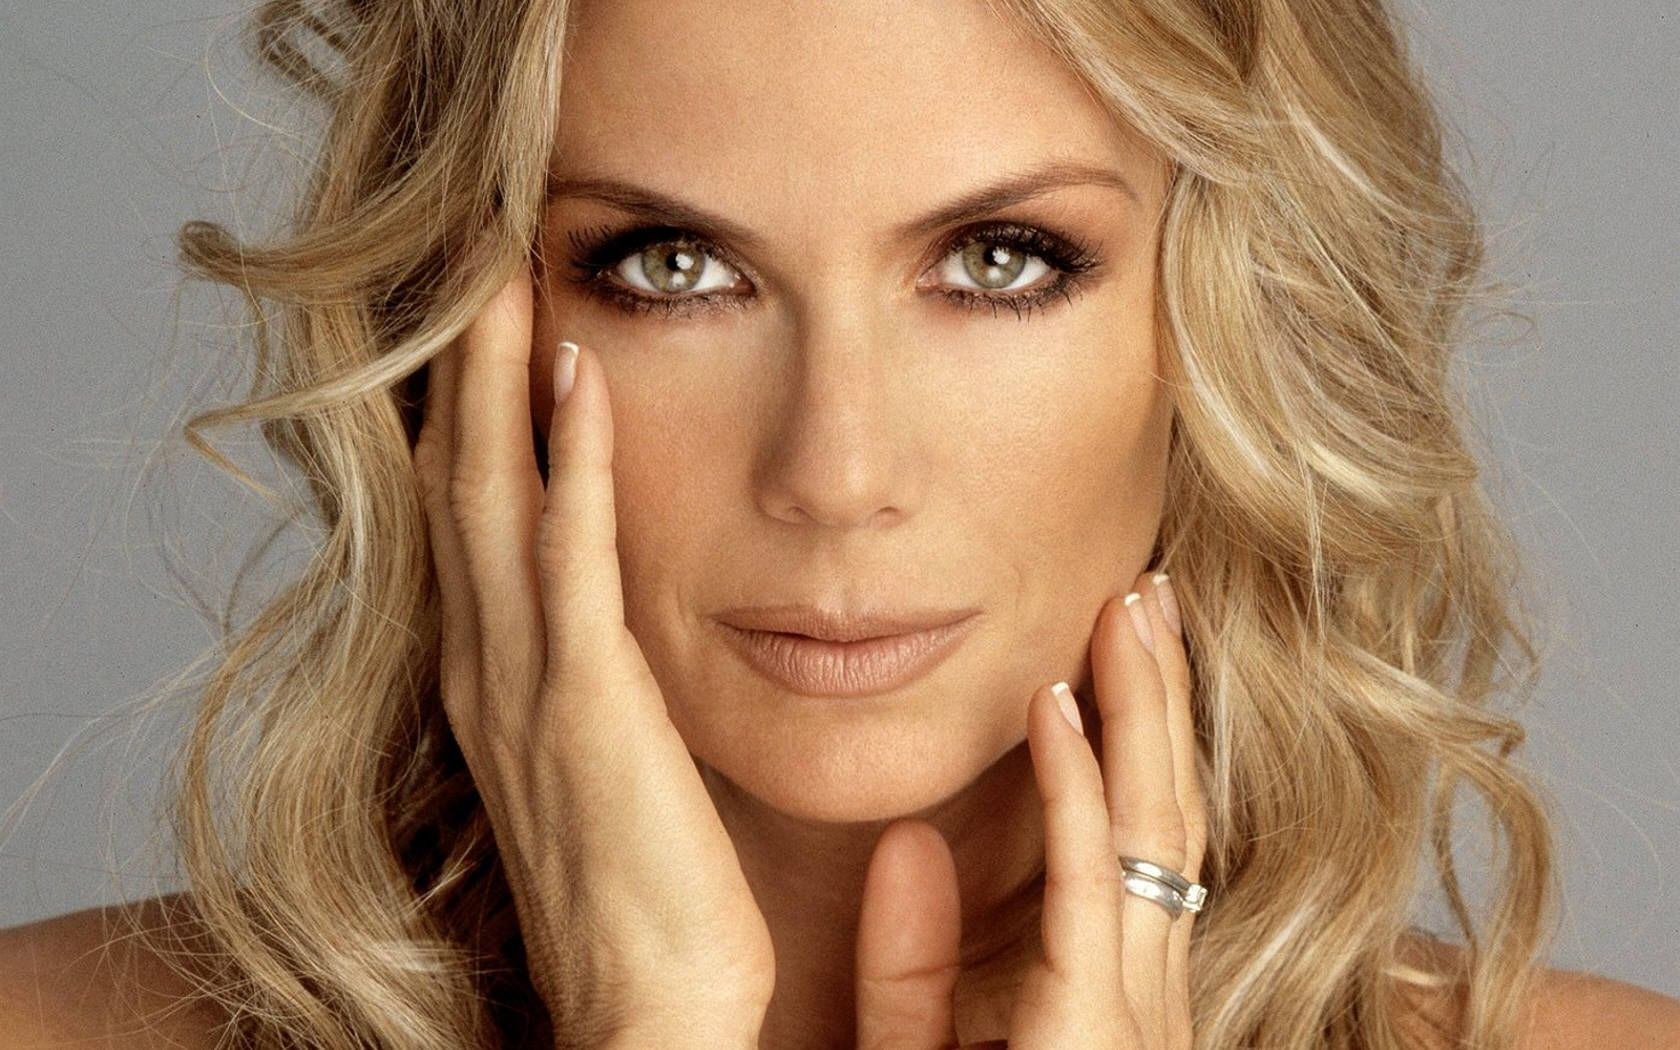 Beautiful: Katherine Kelly Lang, interprete di Brooke parla di amore e matrimoni